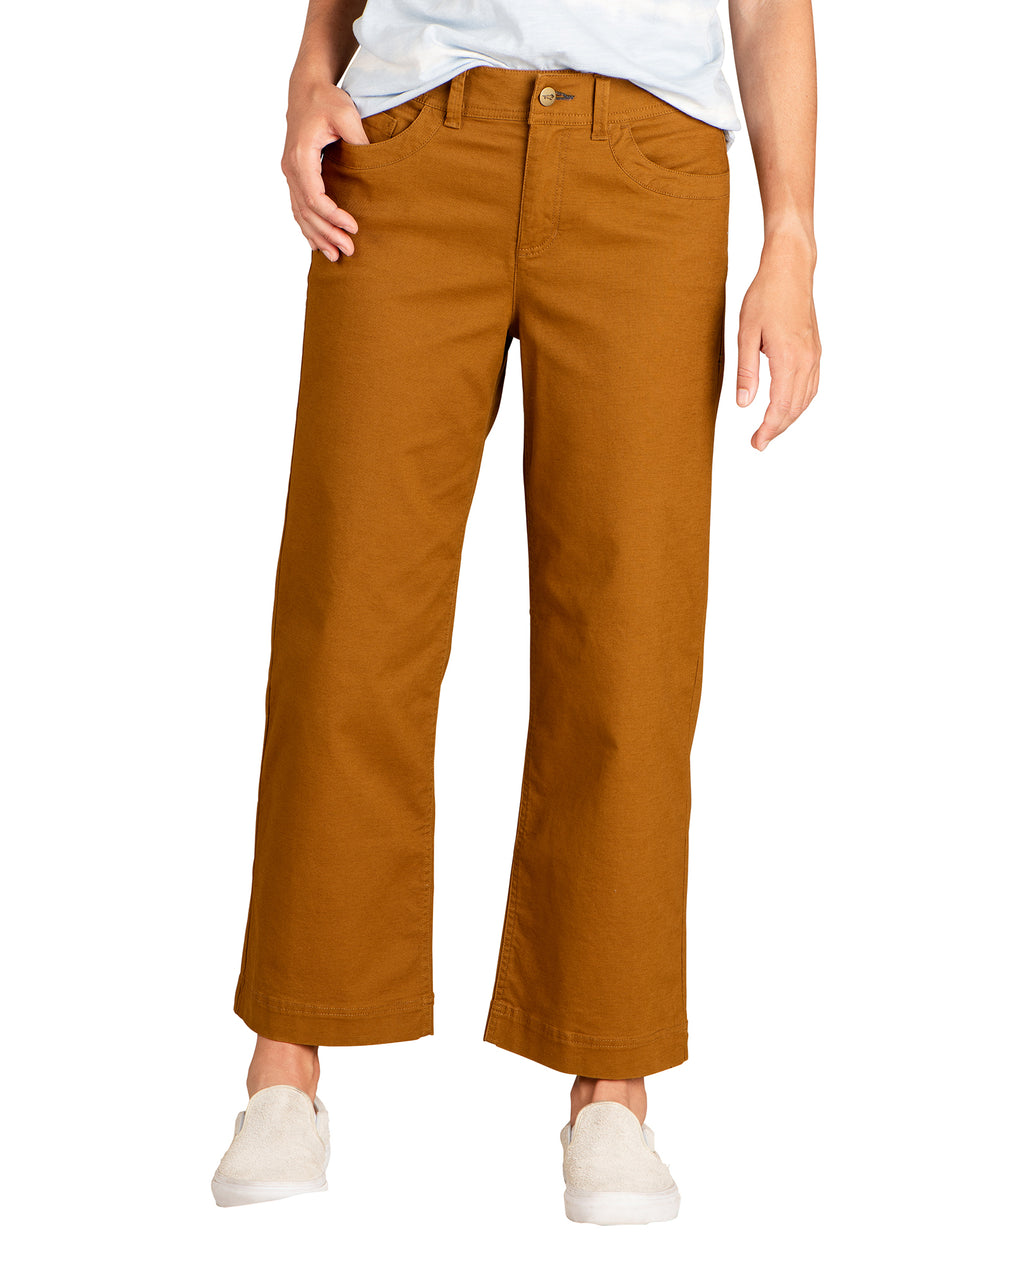 Wide Pants with 4 functional pockets.